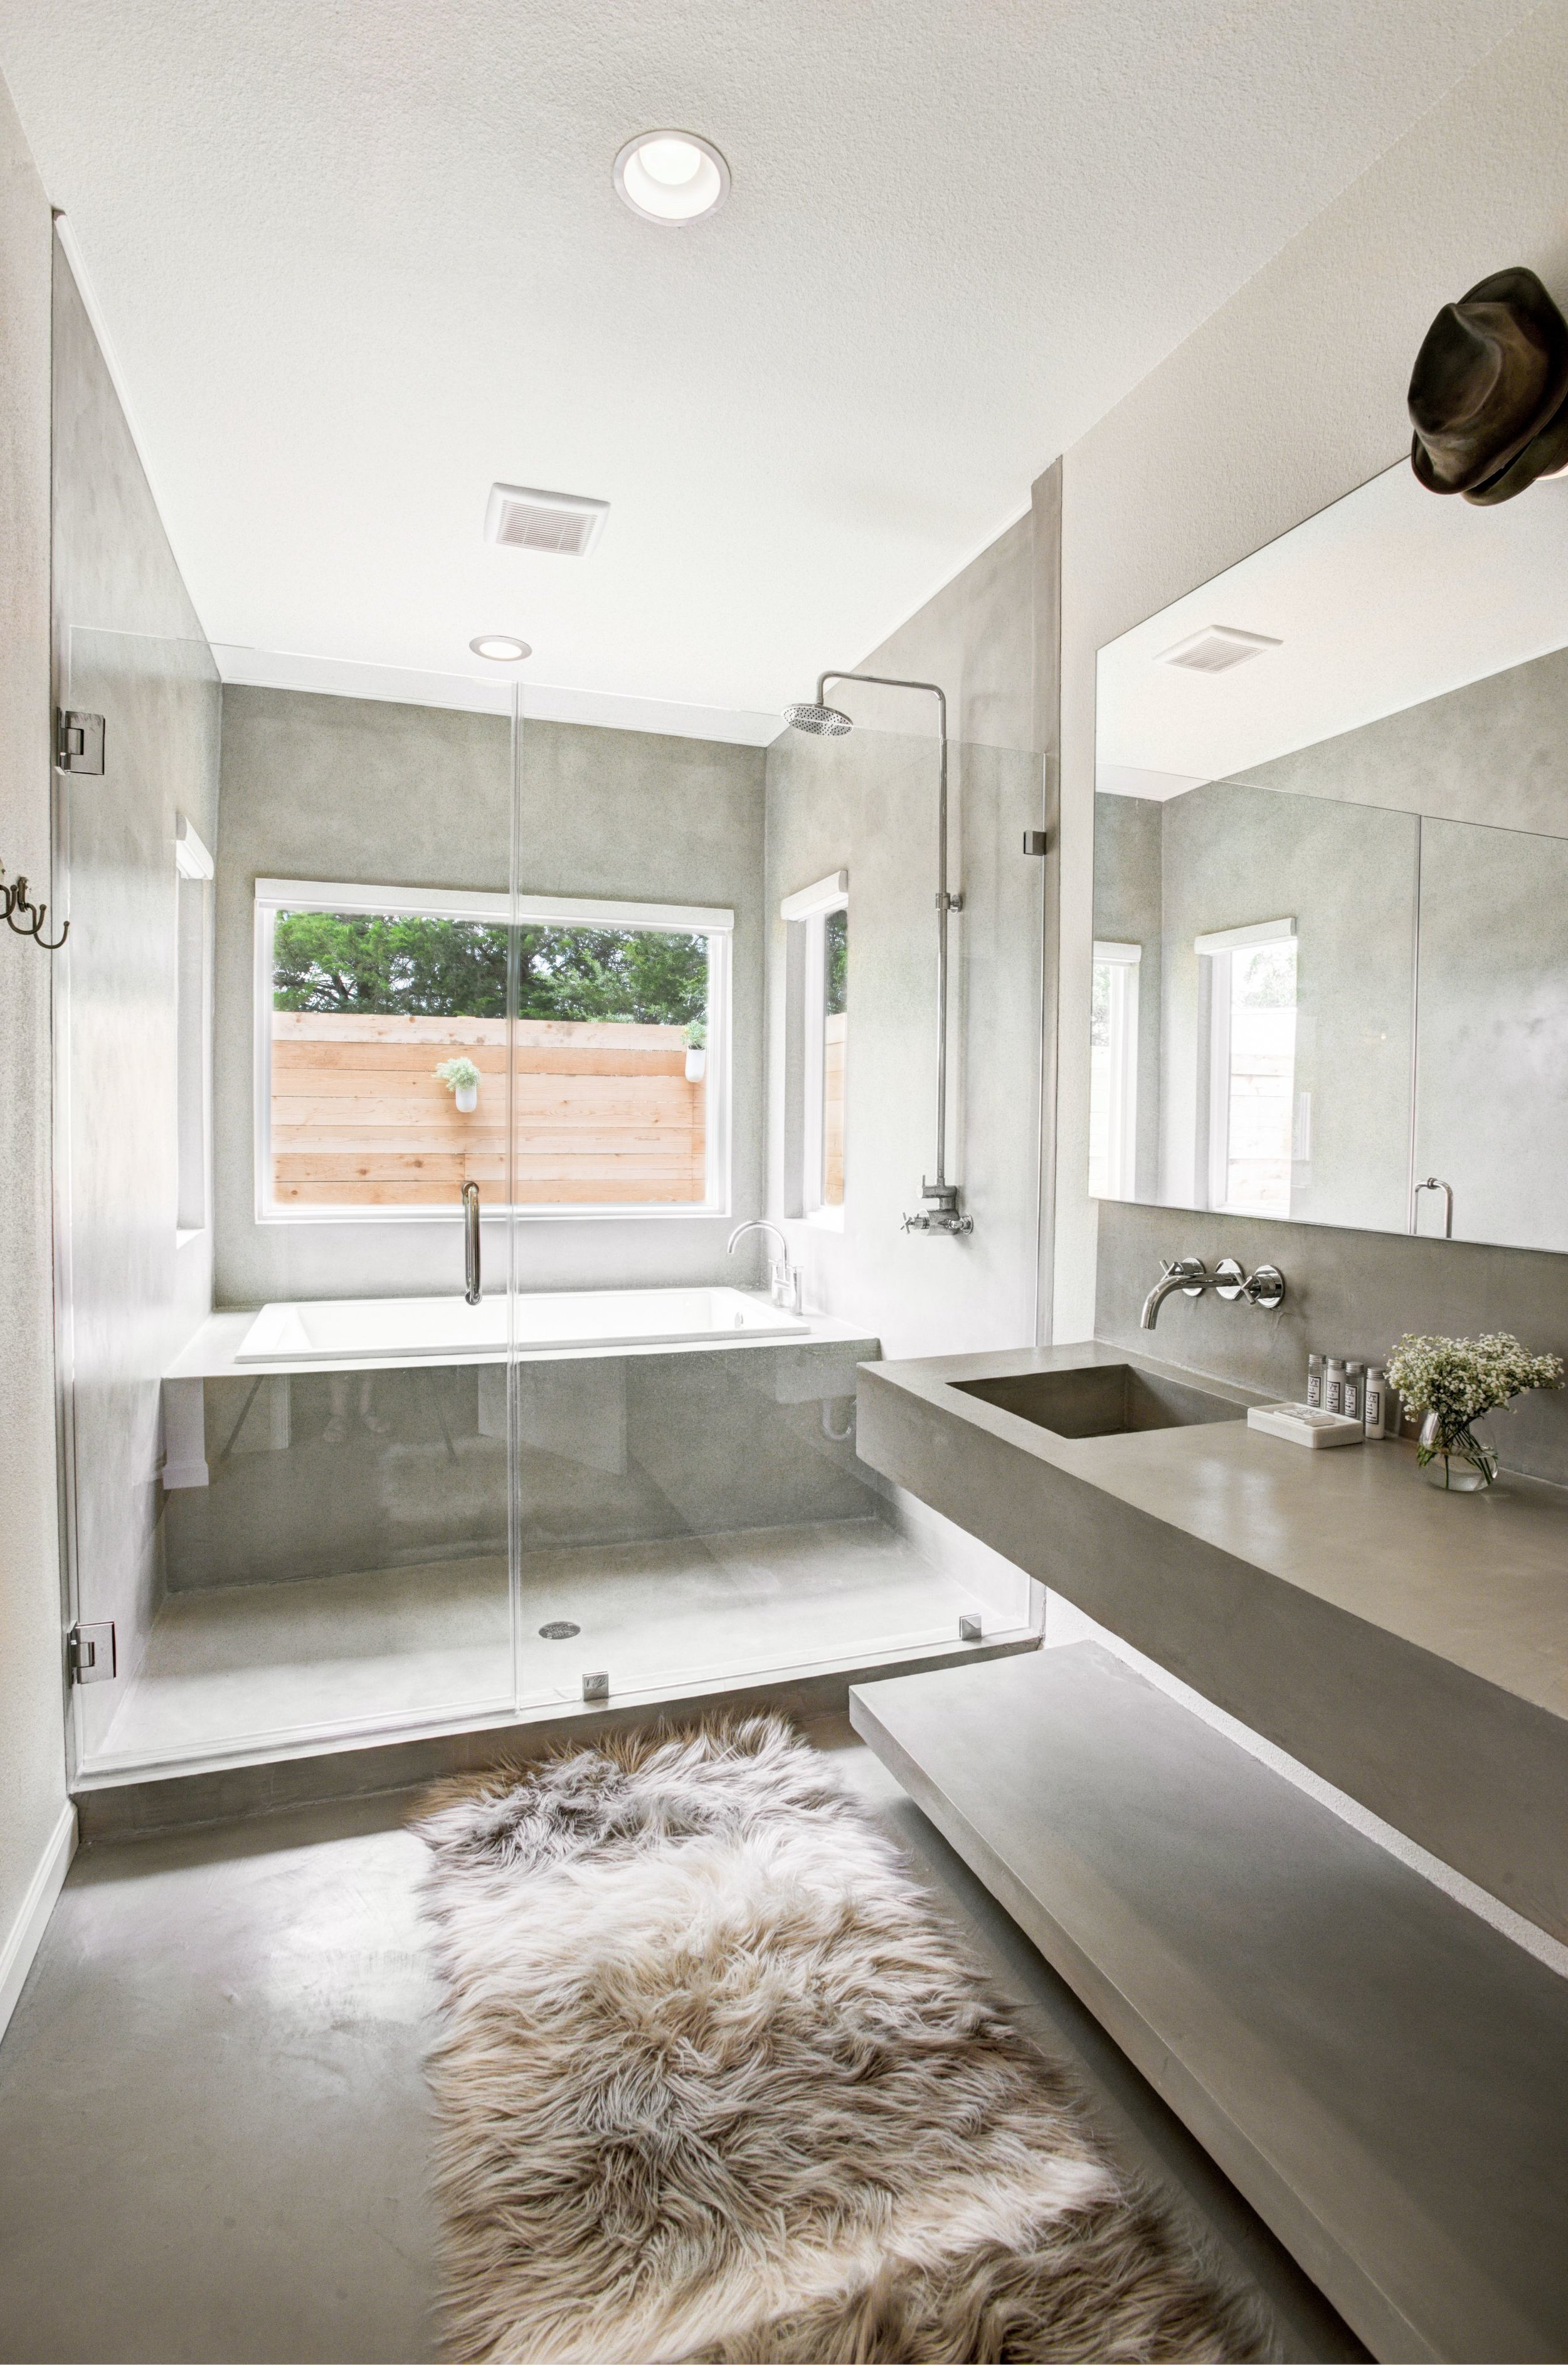 The Boho master bath features a soaking tub and separate shower.